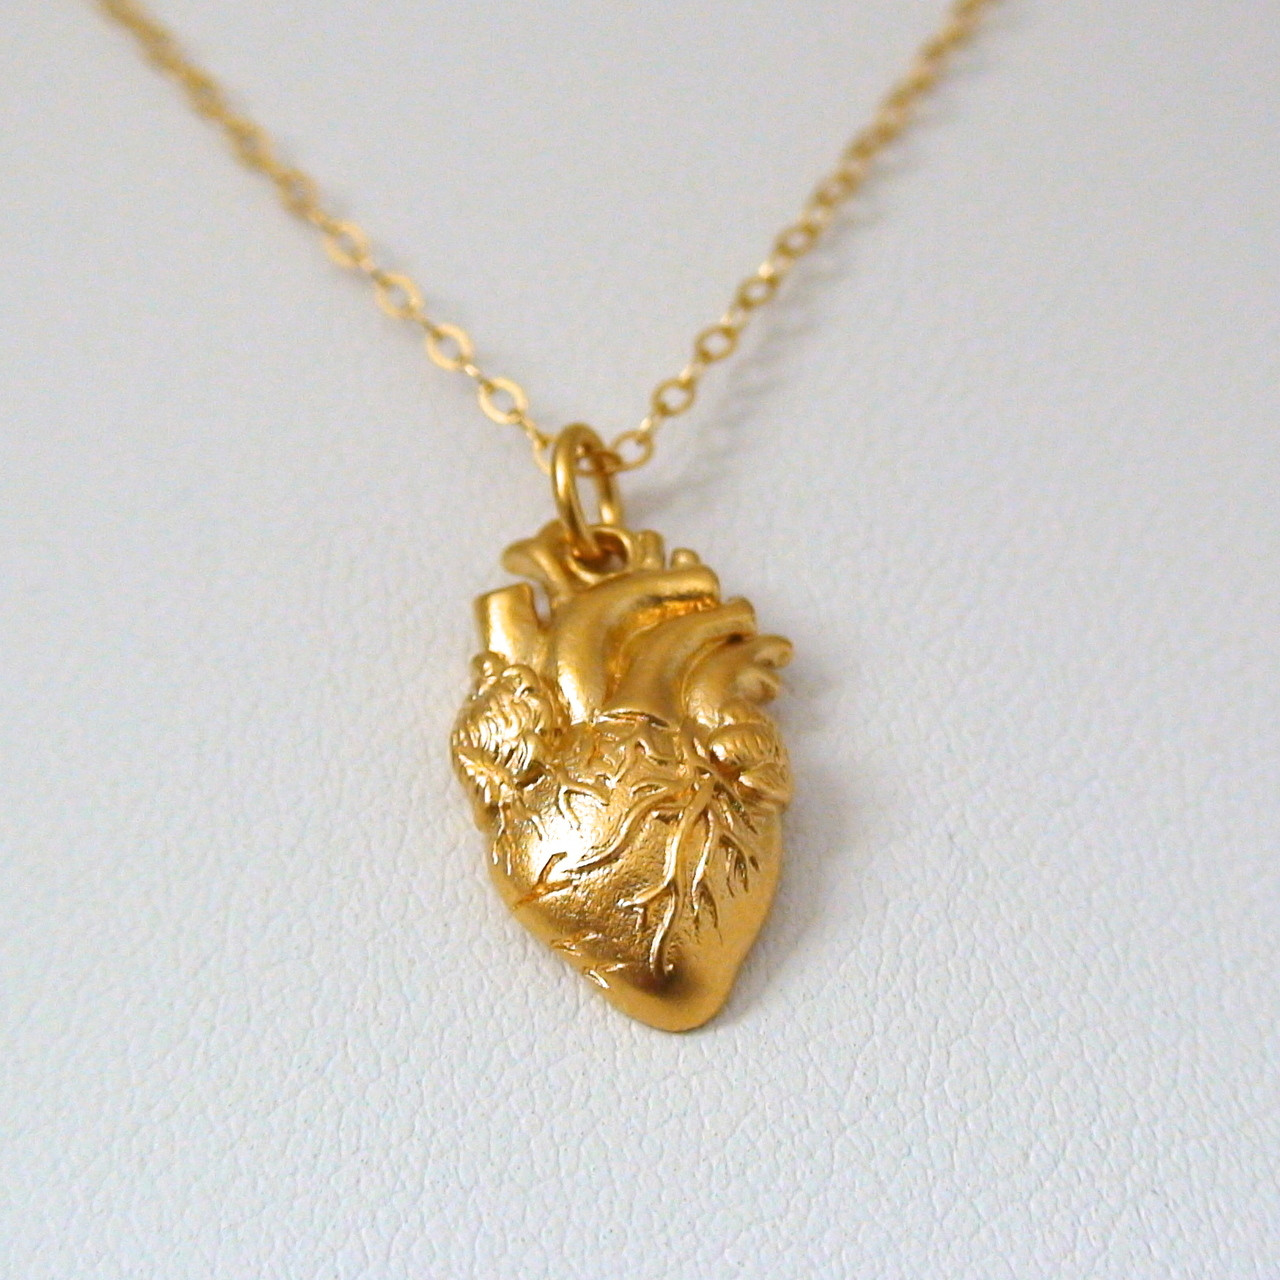 pendants gold co fit g id locket constrain ed heart in wid jewelry pendant chains tiffany hei large necklaces fmt m